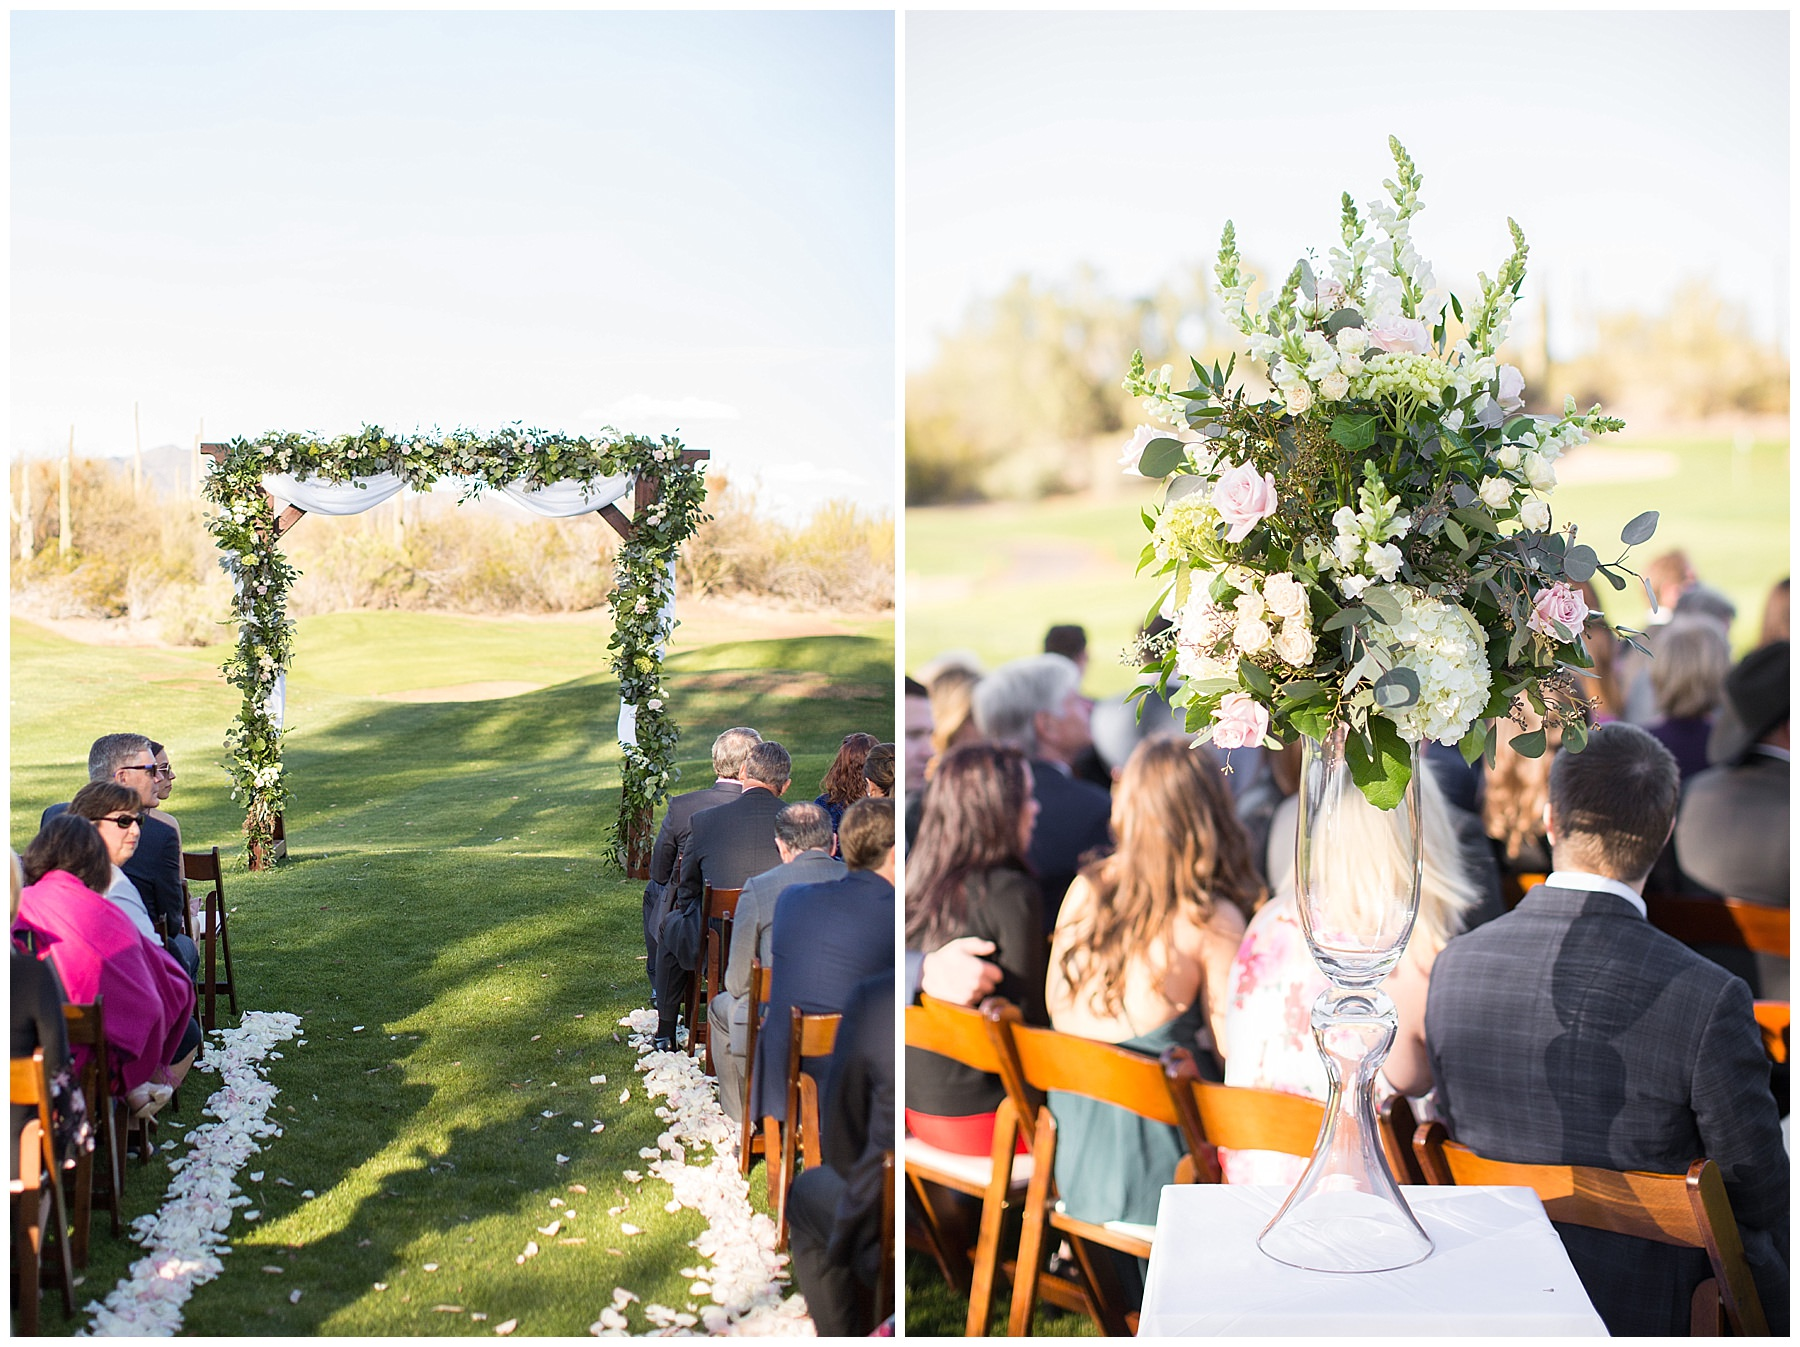 Spring Wedding Flowers at Rancho Manana Resort